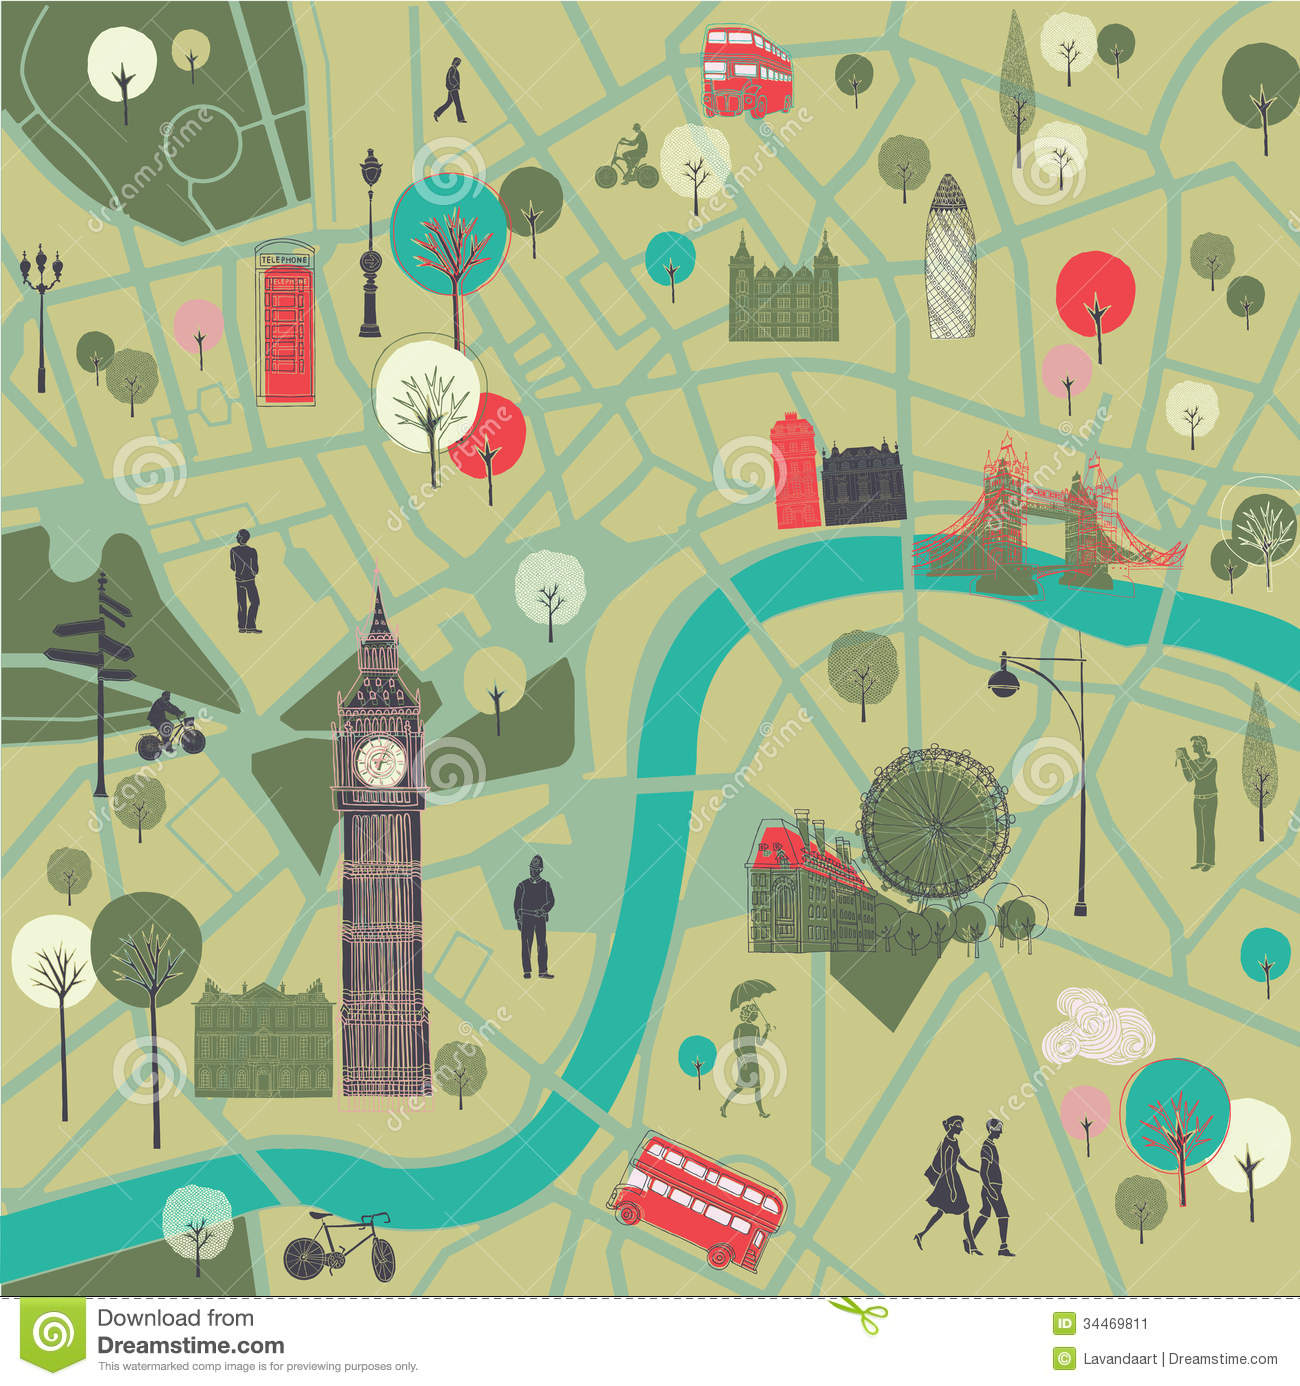 Map Of London With Famous Landmarks.Map Of London With Landmarks Stock Illustration